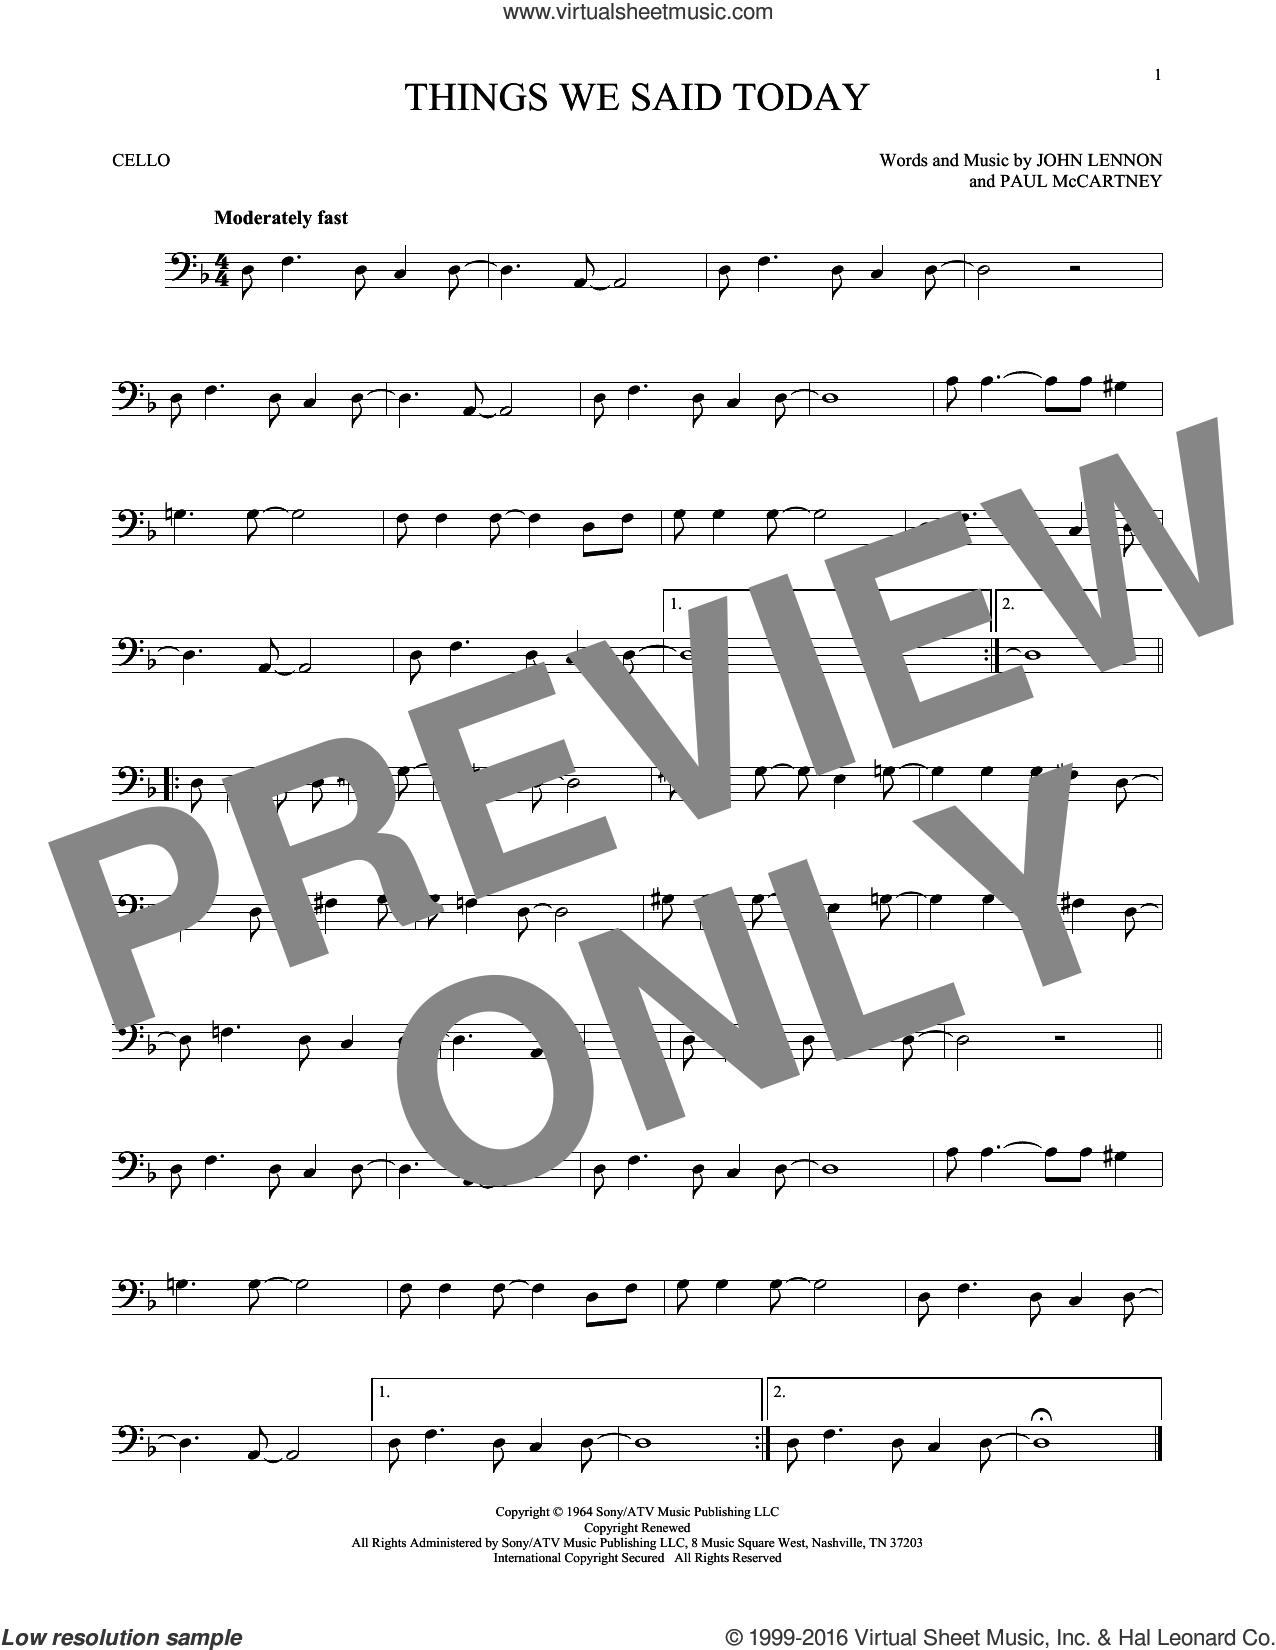 Things We Said Today sheet music for cello solo by The Beatles, John Lennon and Paul McCartney, intermediate skill level